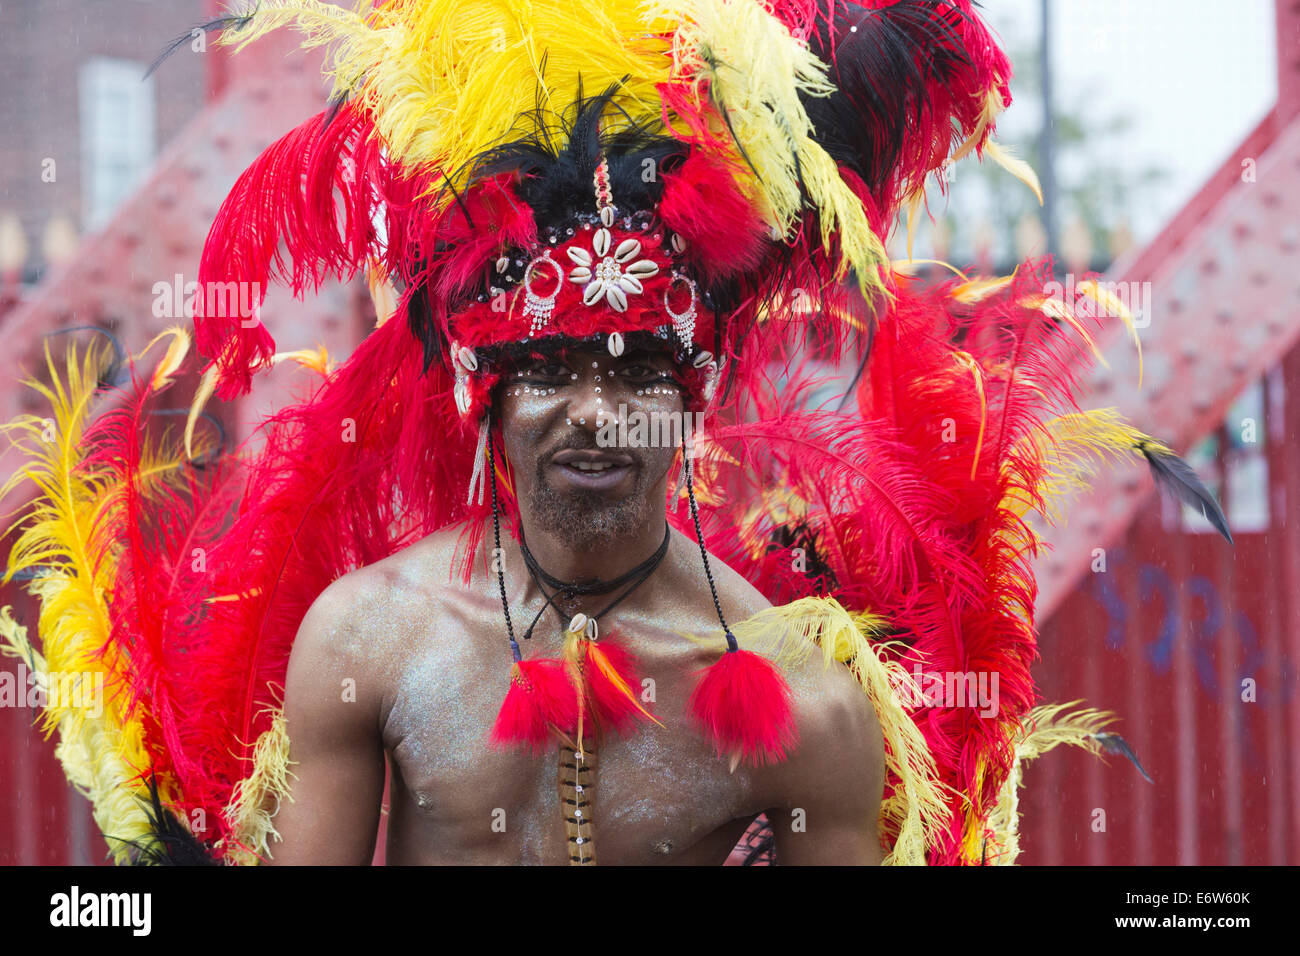 Male Samba Dancer with feathers from the London School of Samba at a rainy Notting Hill Carnival parade, London, - Stock Image